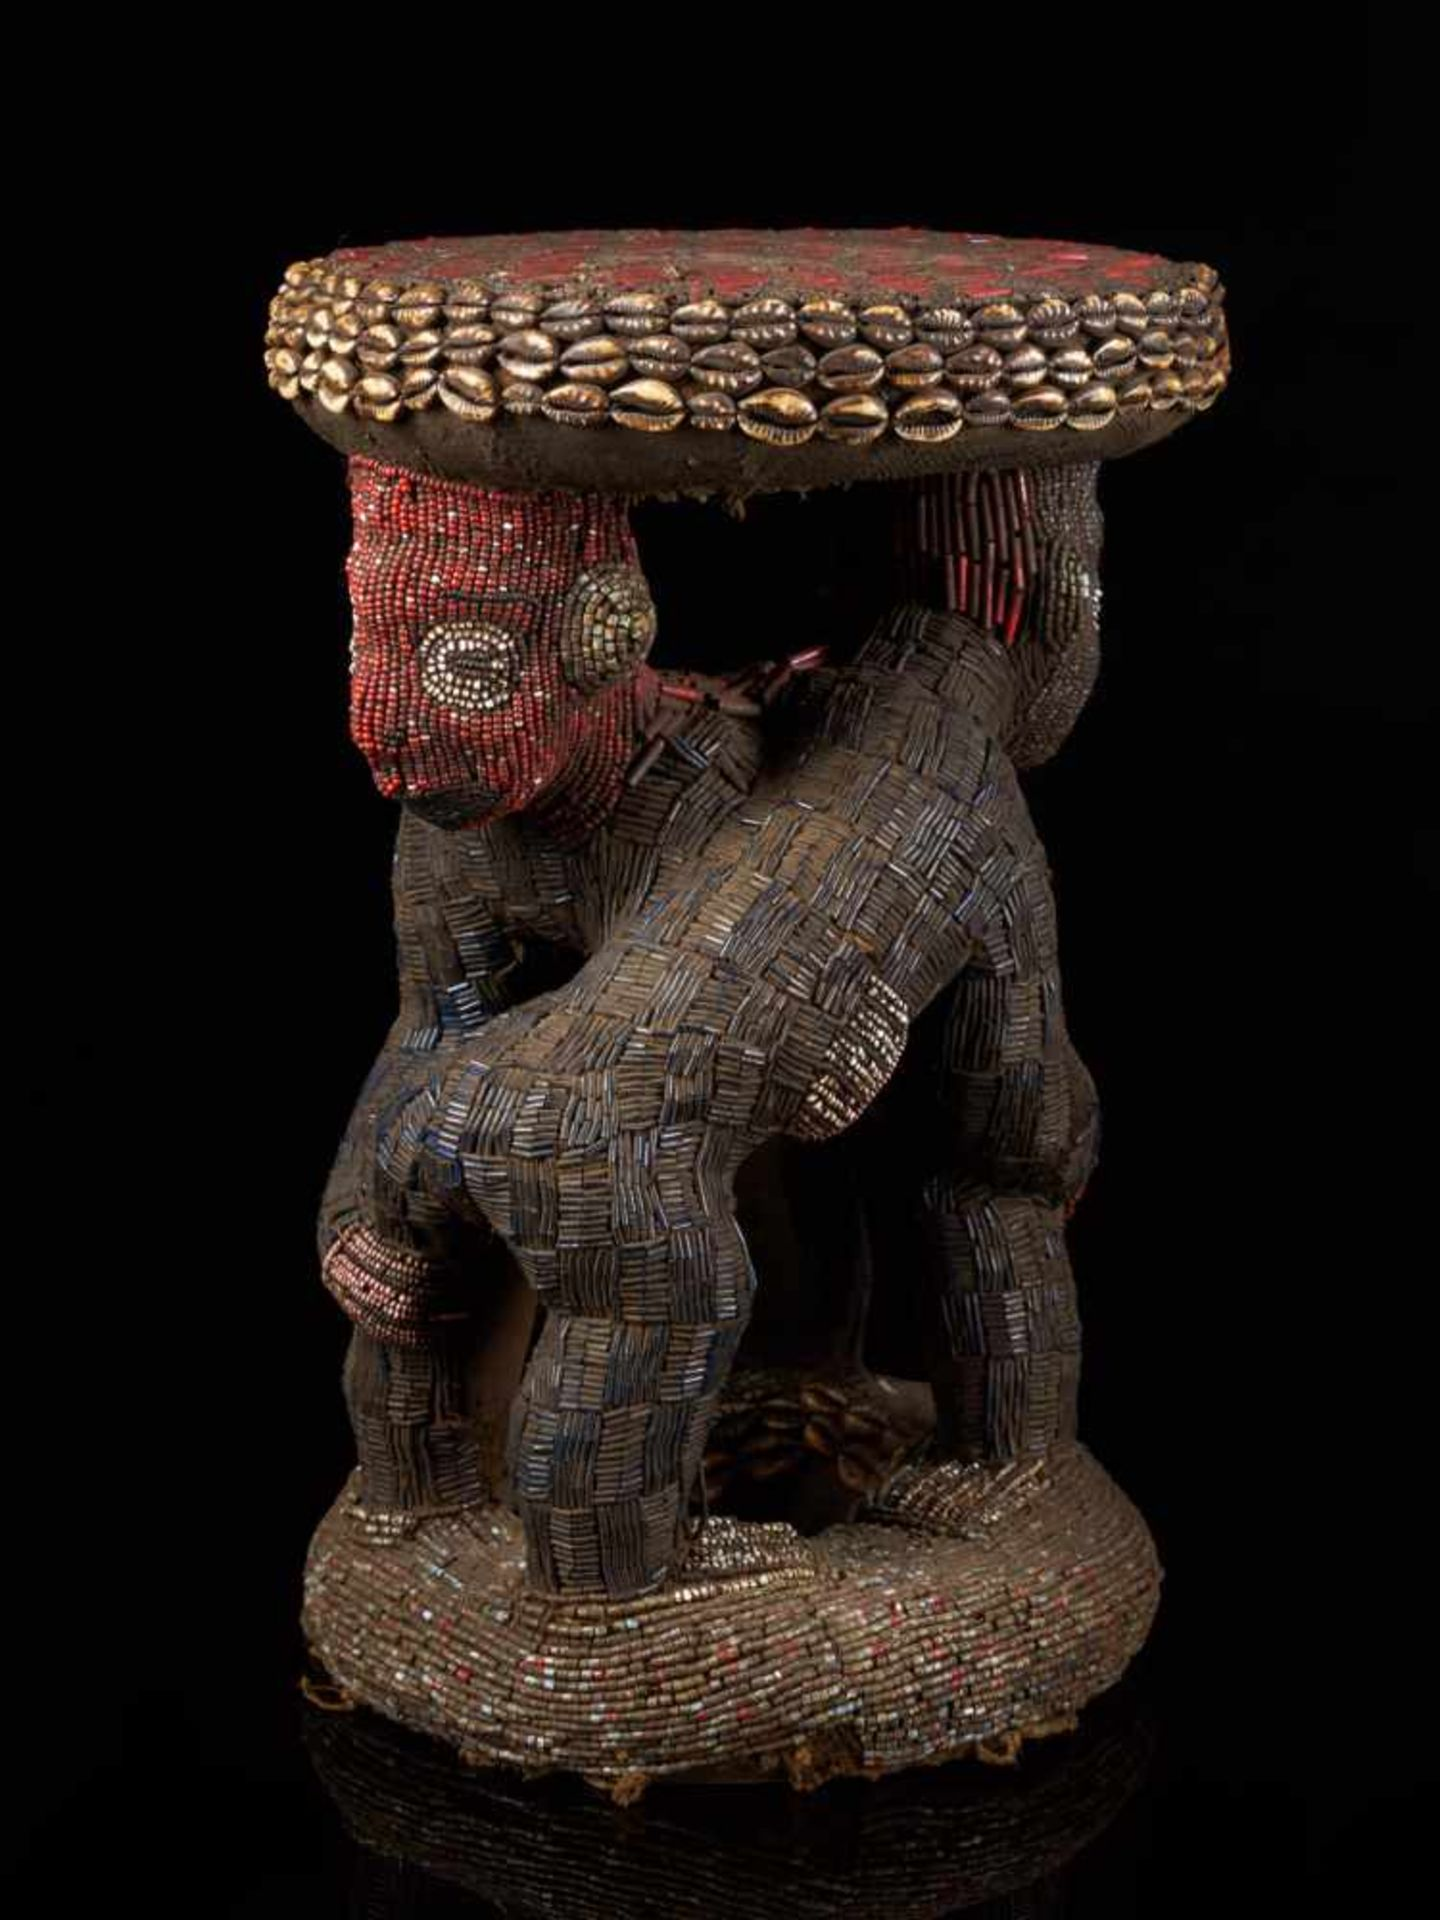 Beaded Royal Stool Supported By Two Figures - Tribal ArtThis exquisite stool has a round base and